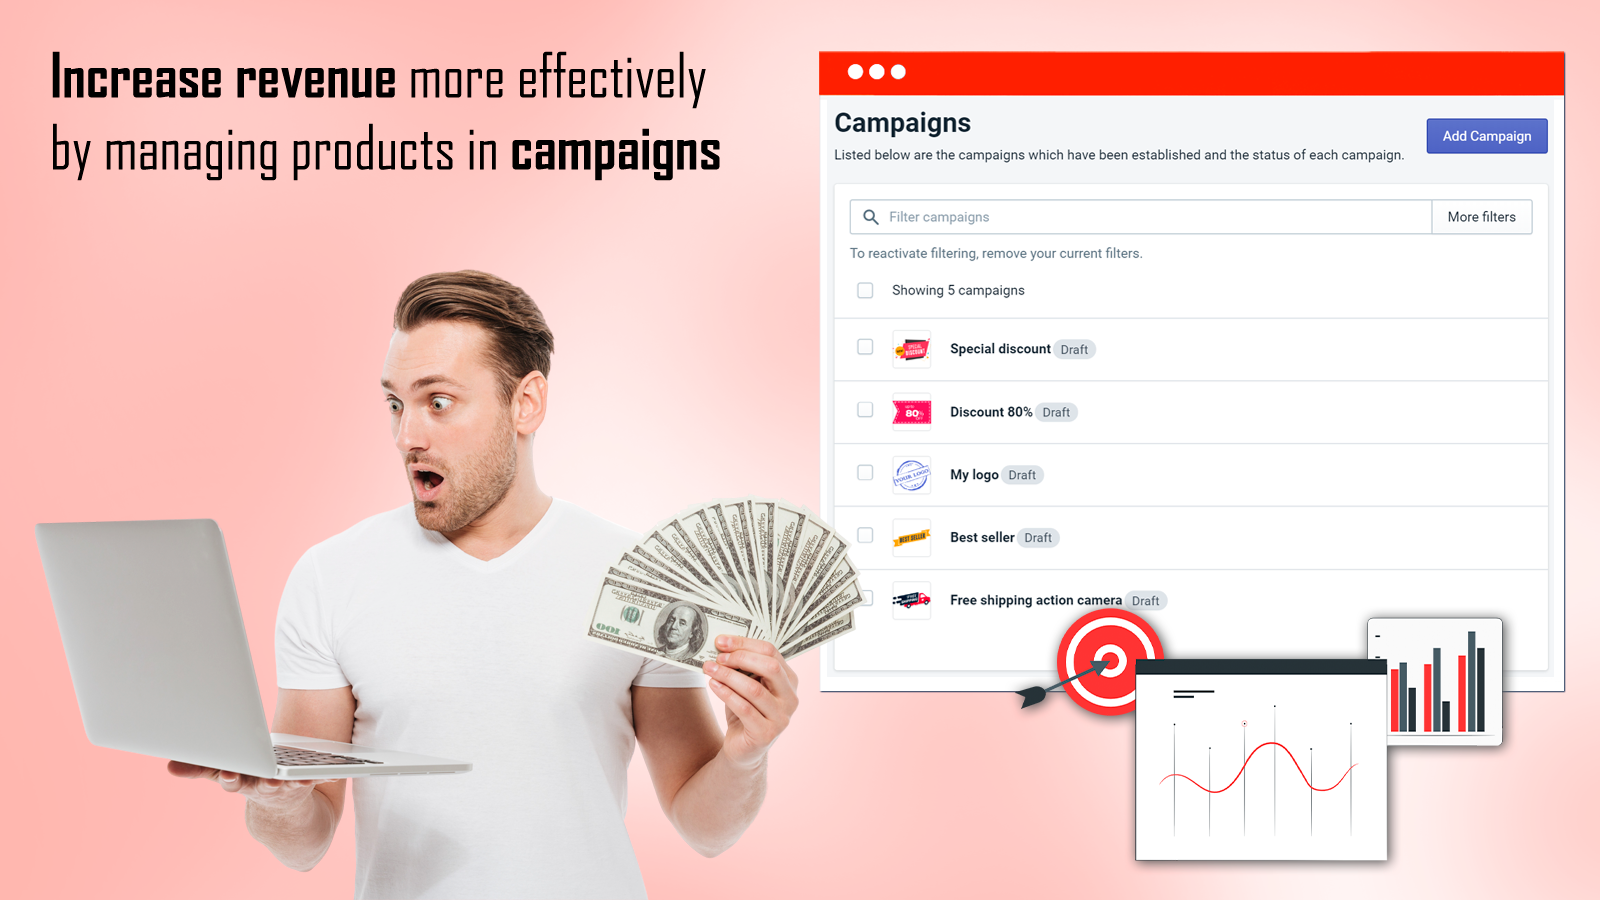 Increase revenue effectively by managing products in campaigns